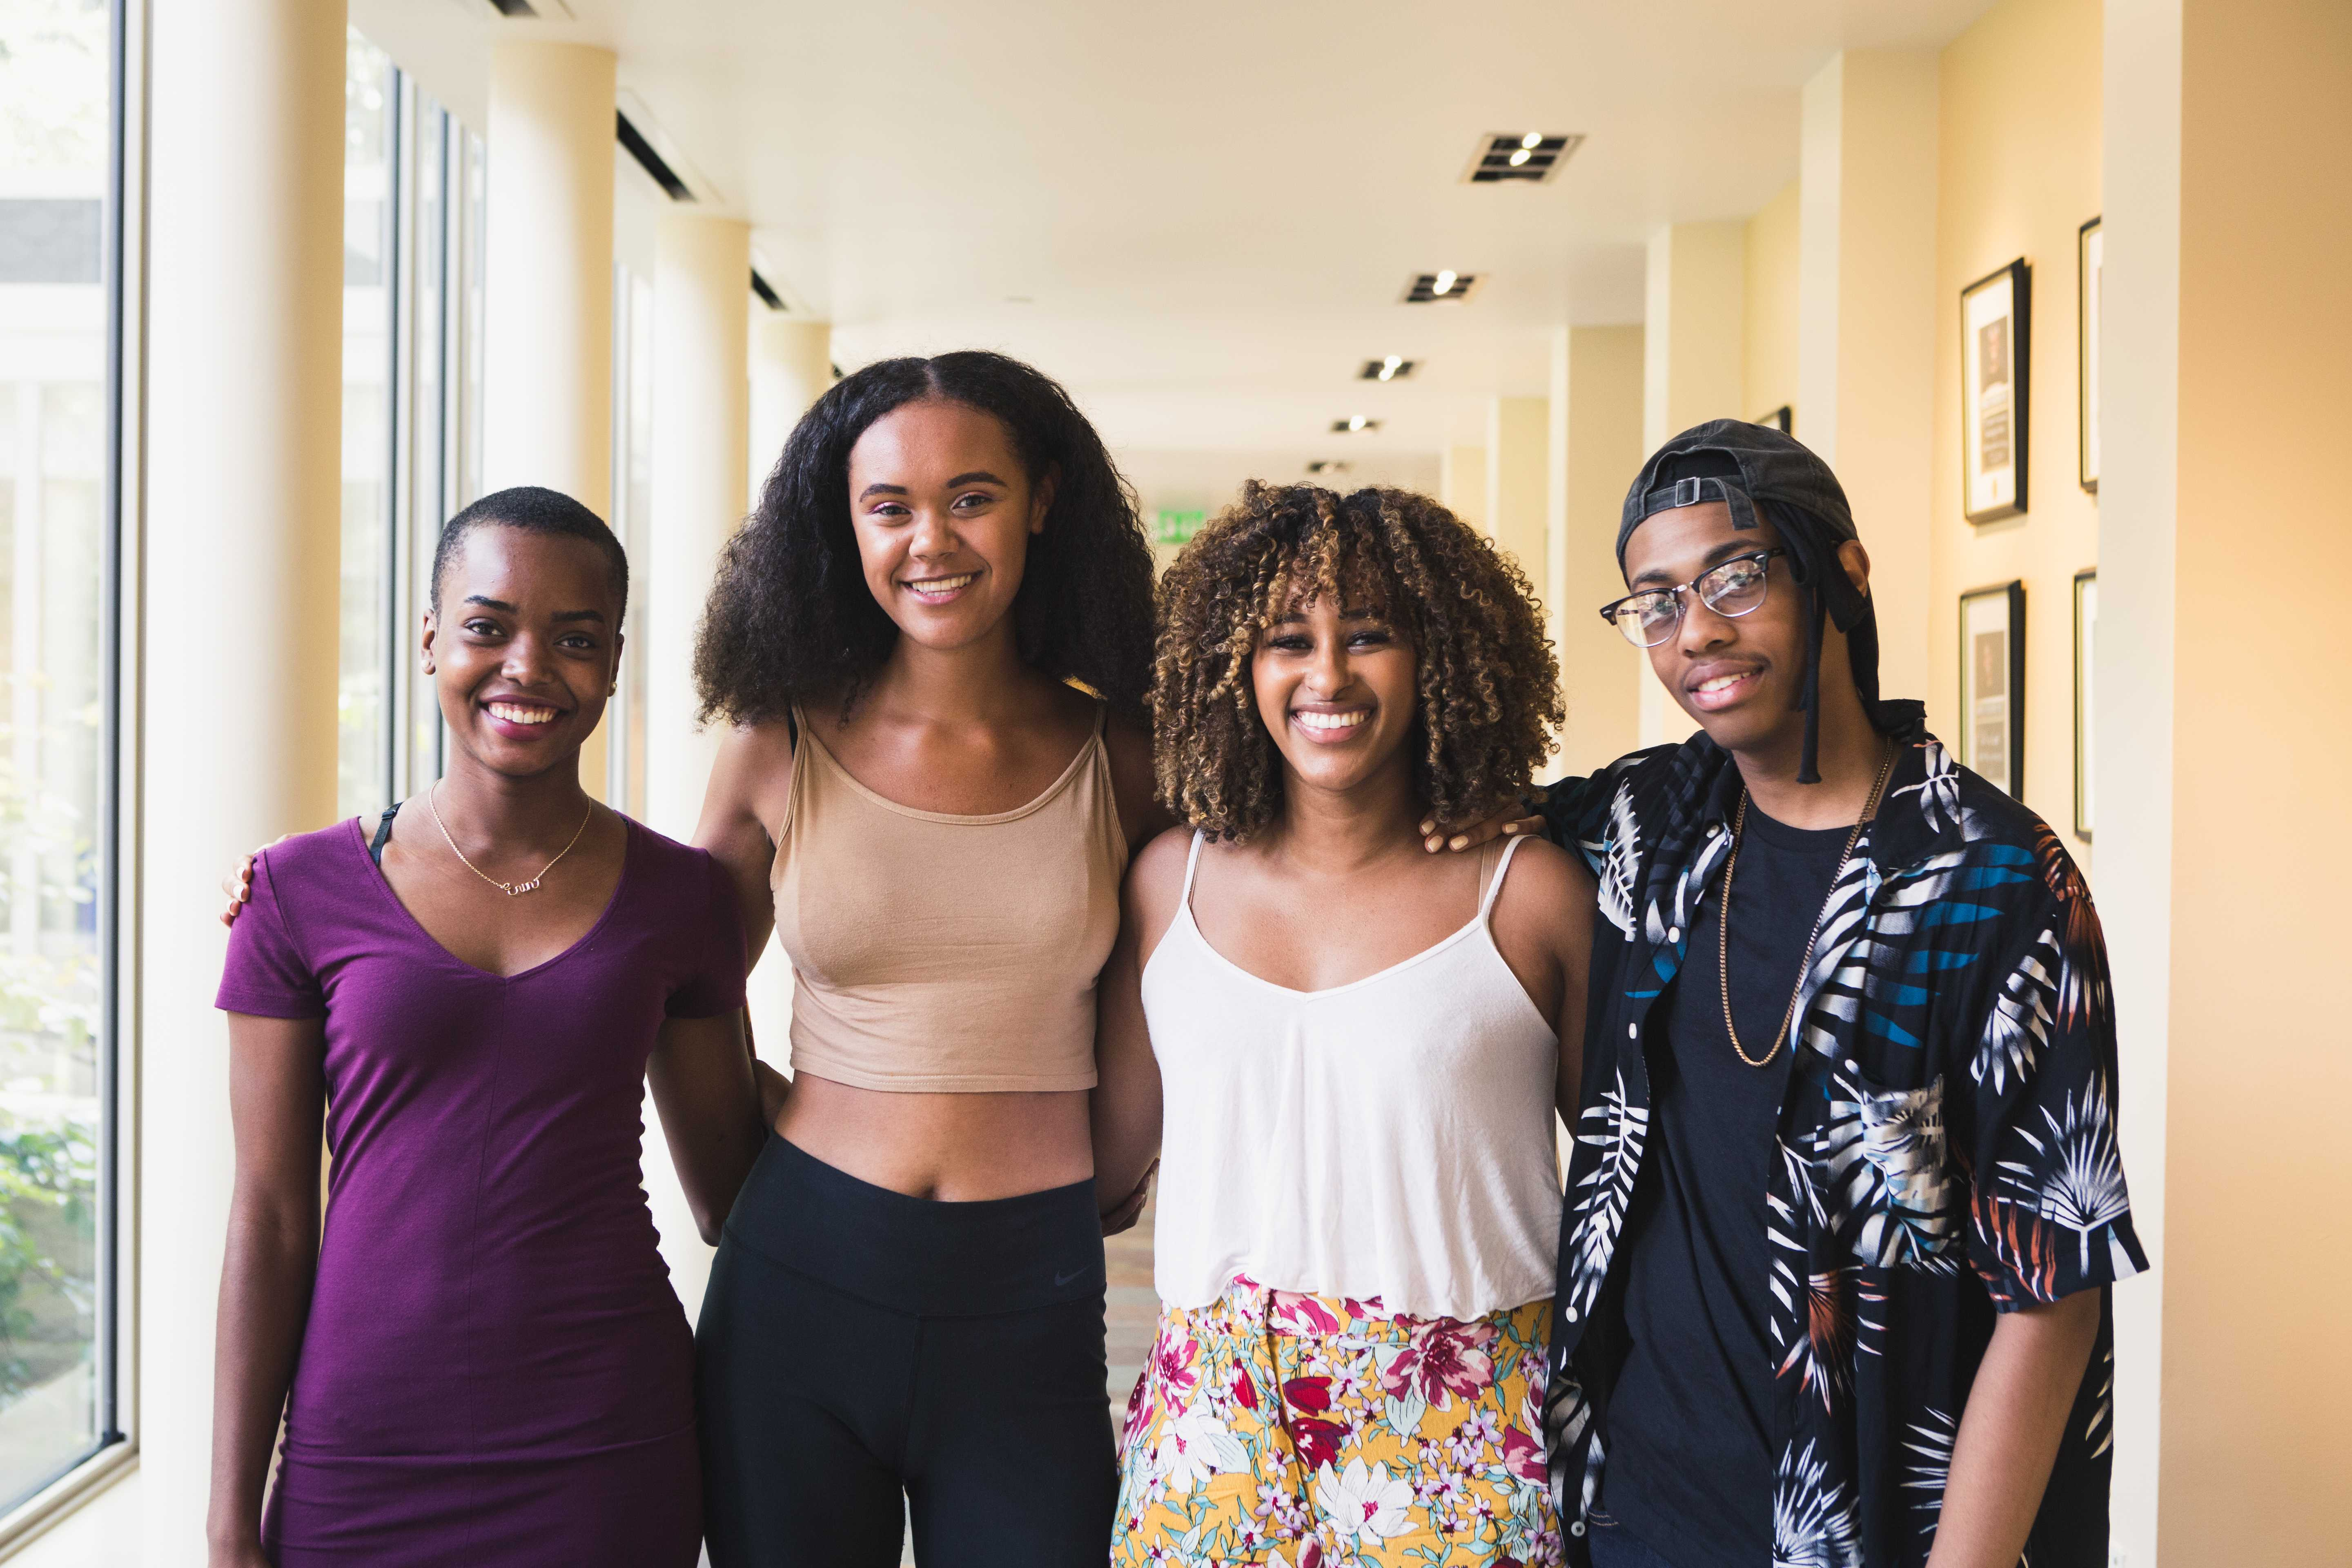 Student publication New Dawn highlights Black voices, creatives on campus